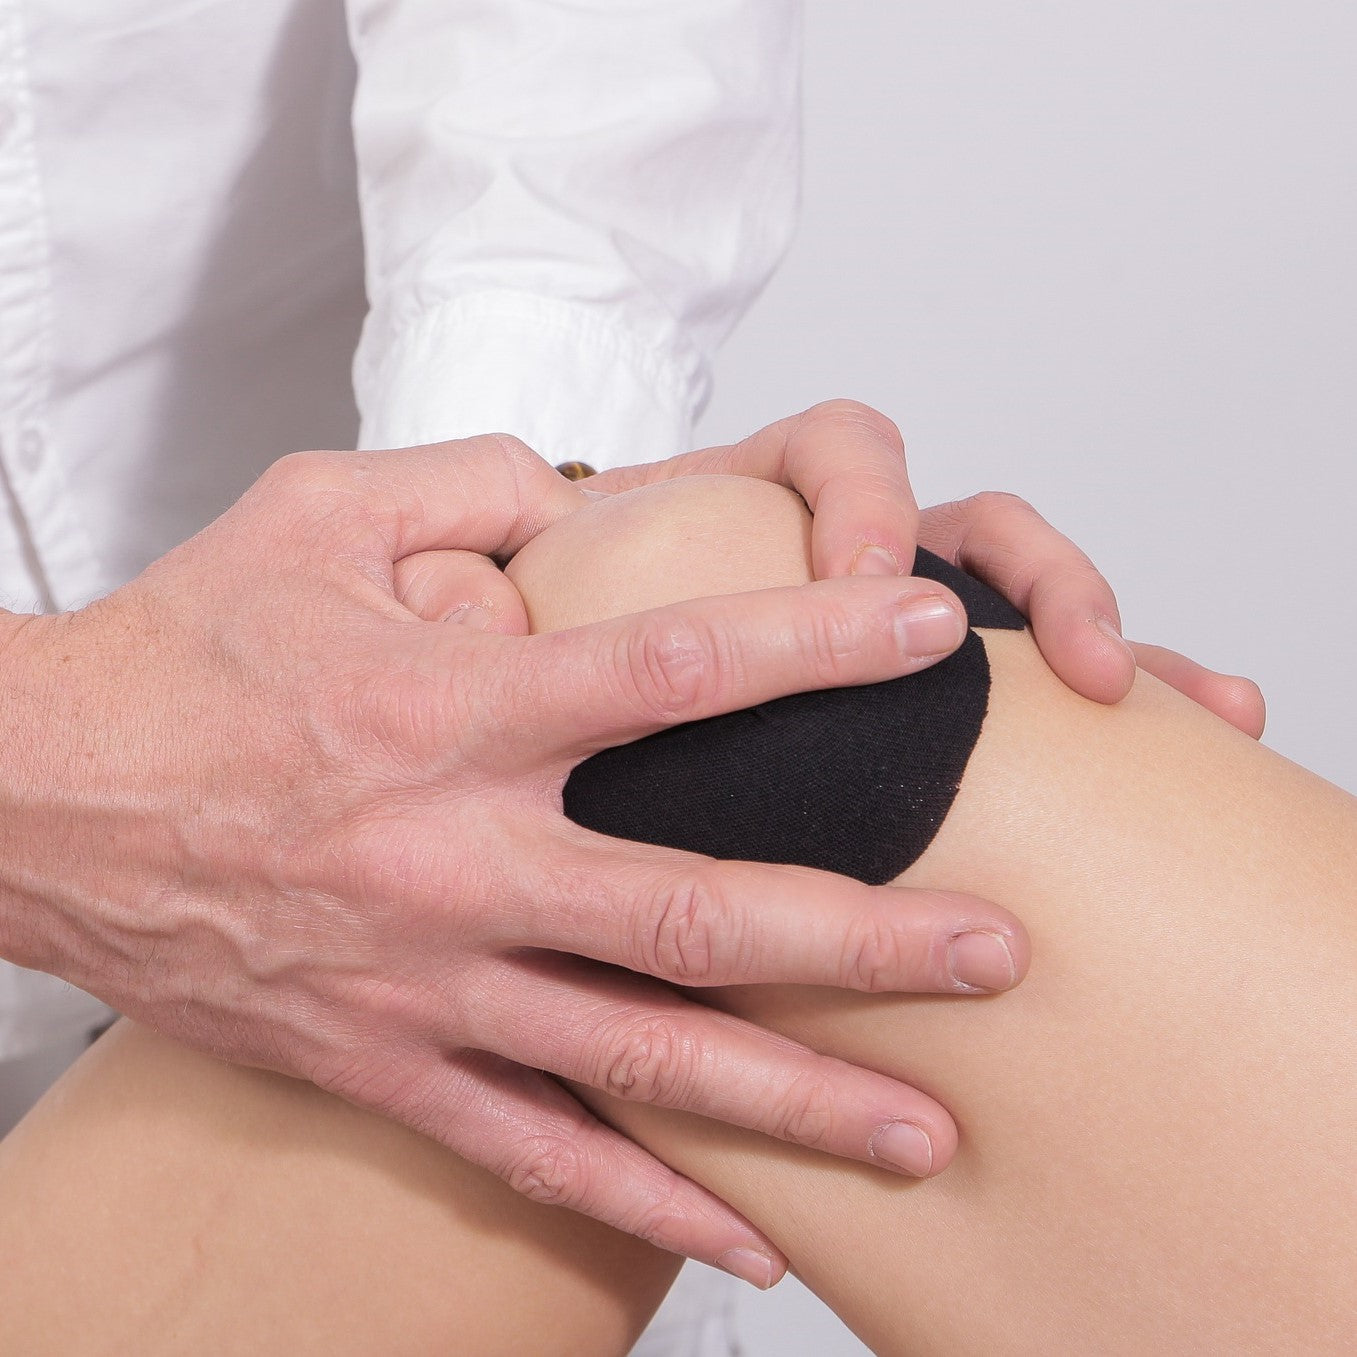 How to Relieve Knee Pain at Night